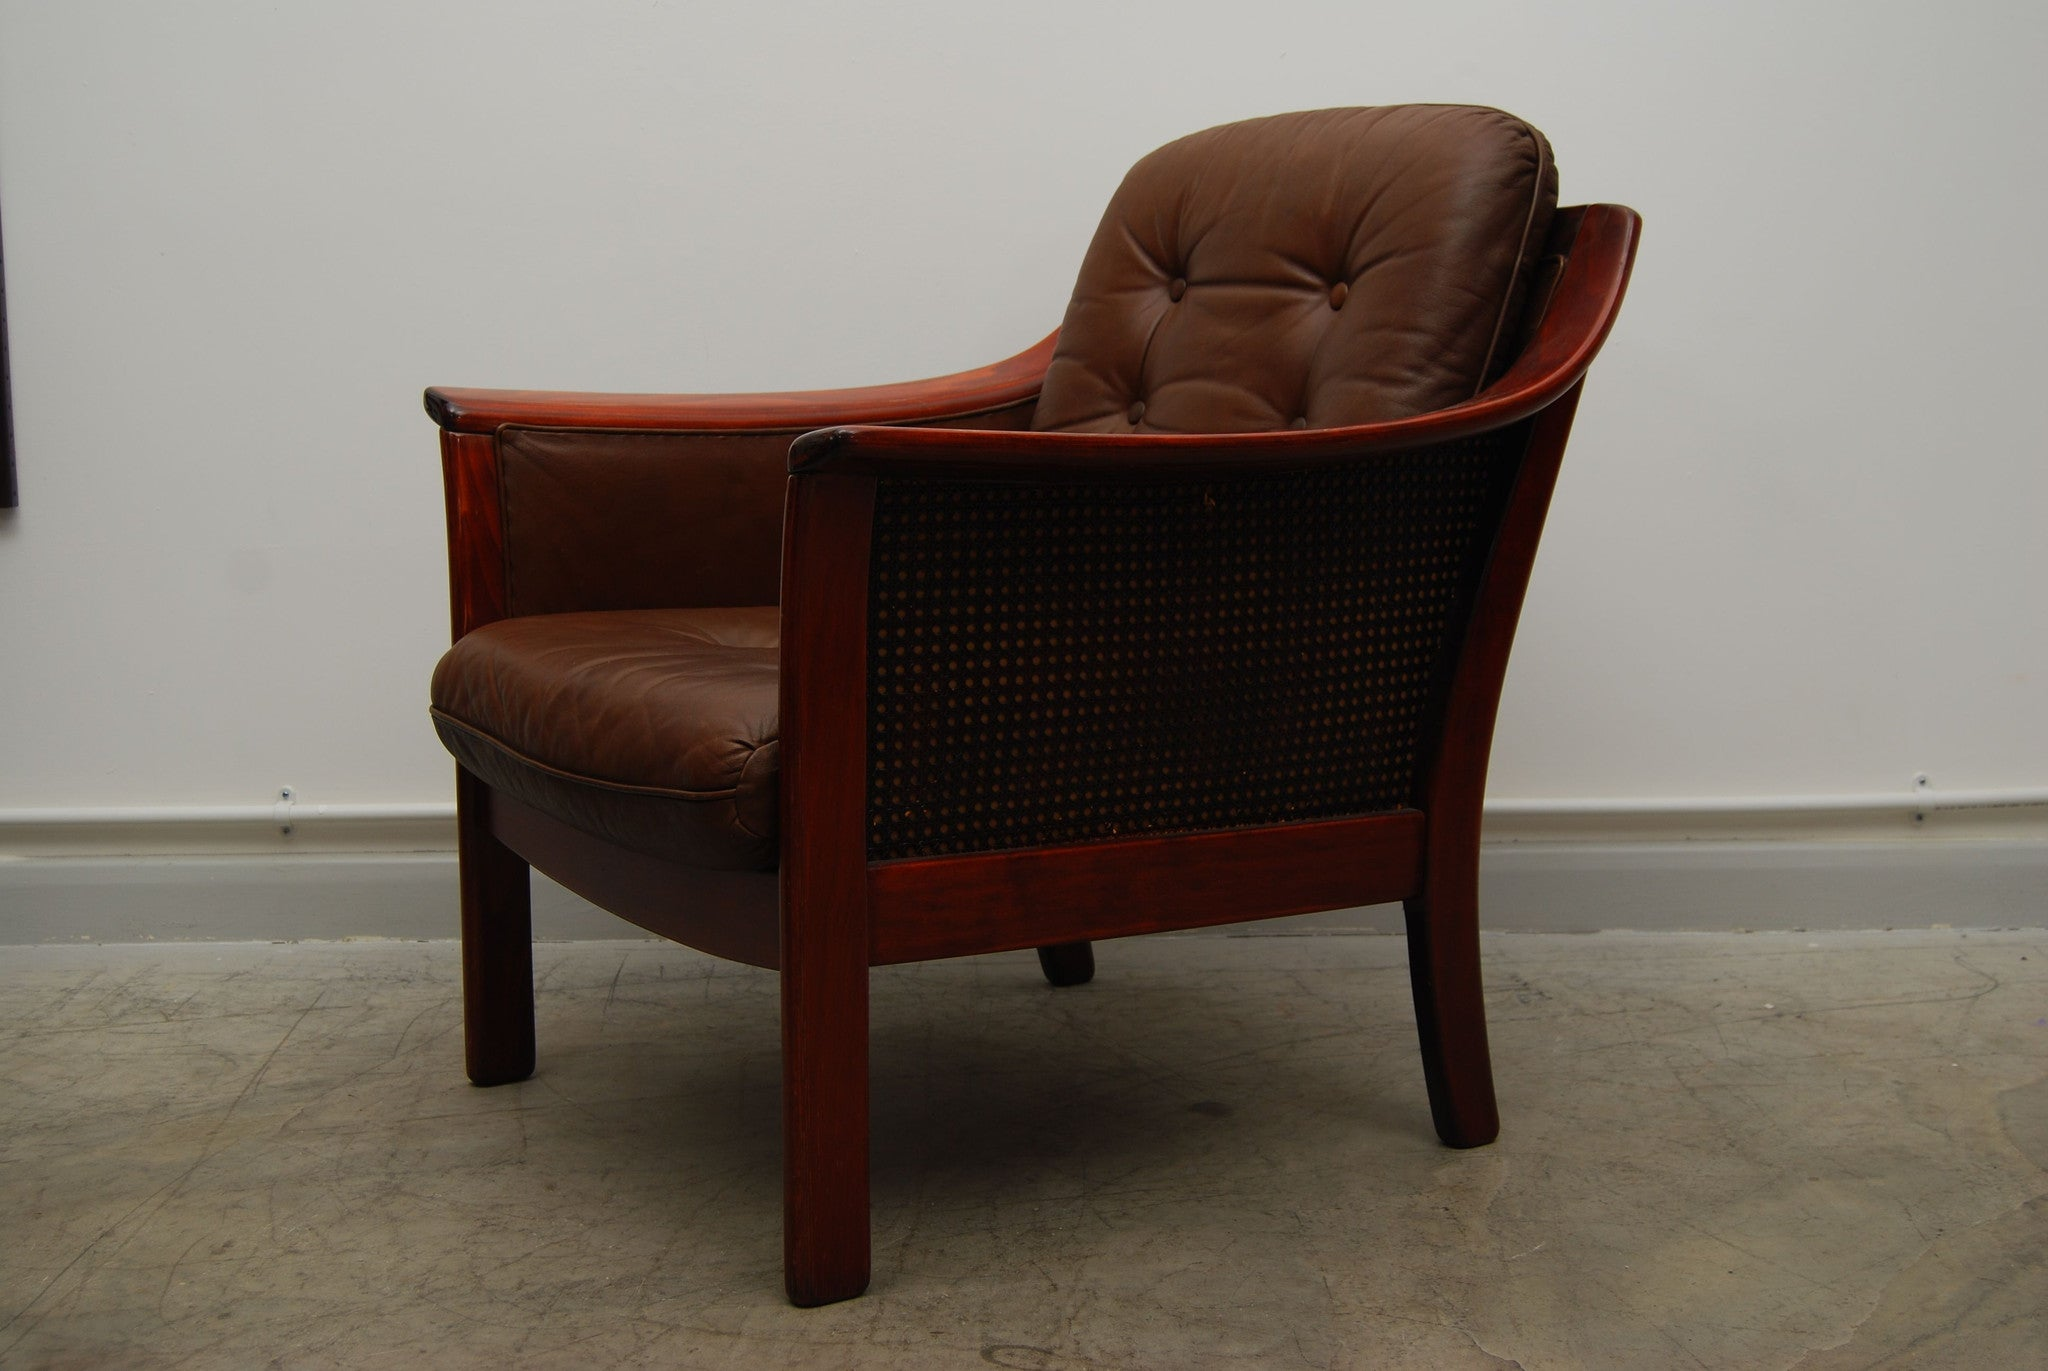 Chase & Sorensen Pair of leather and beech lounge chairs